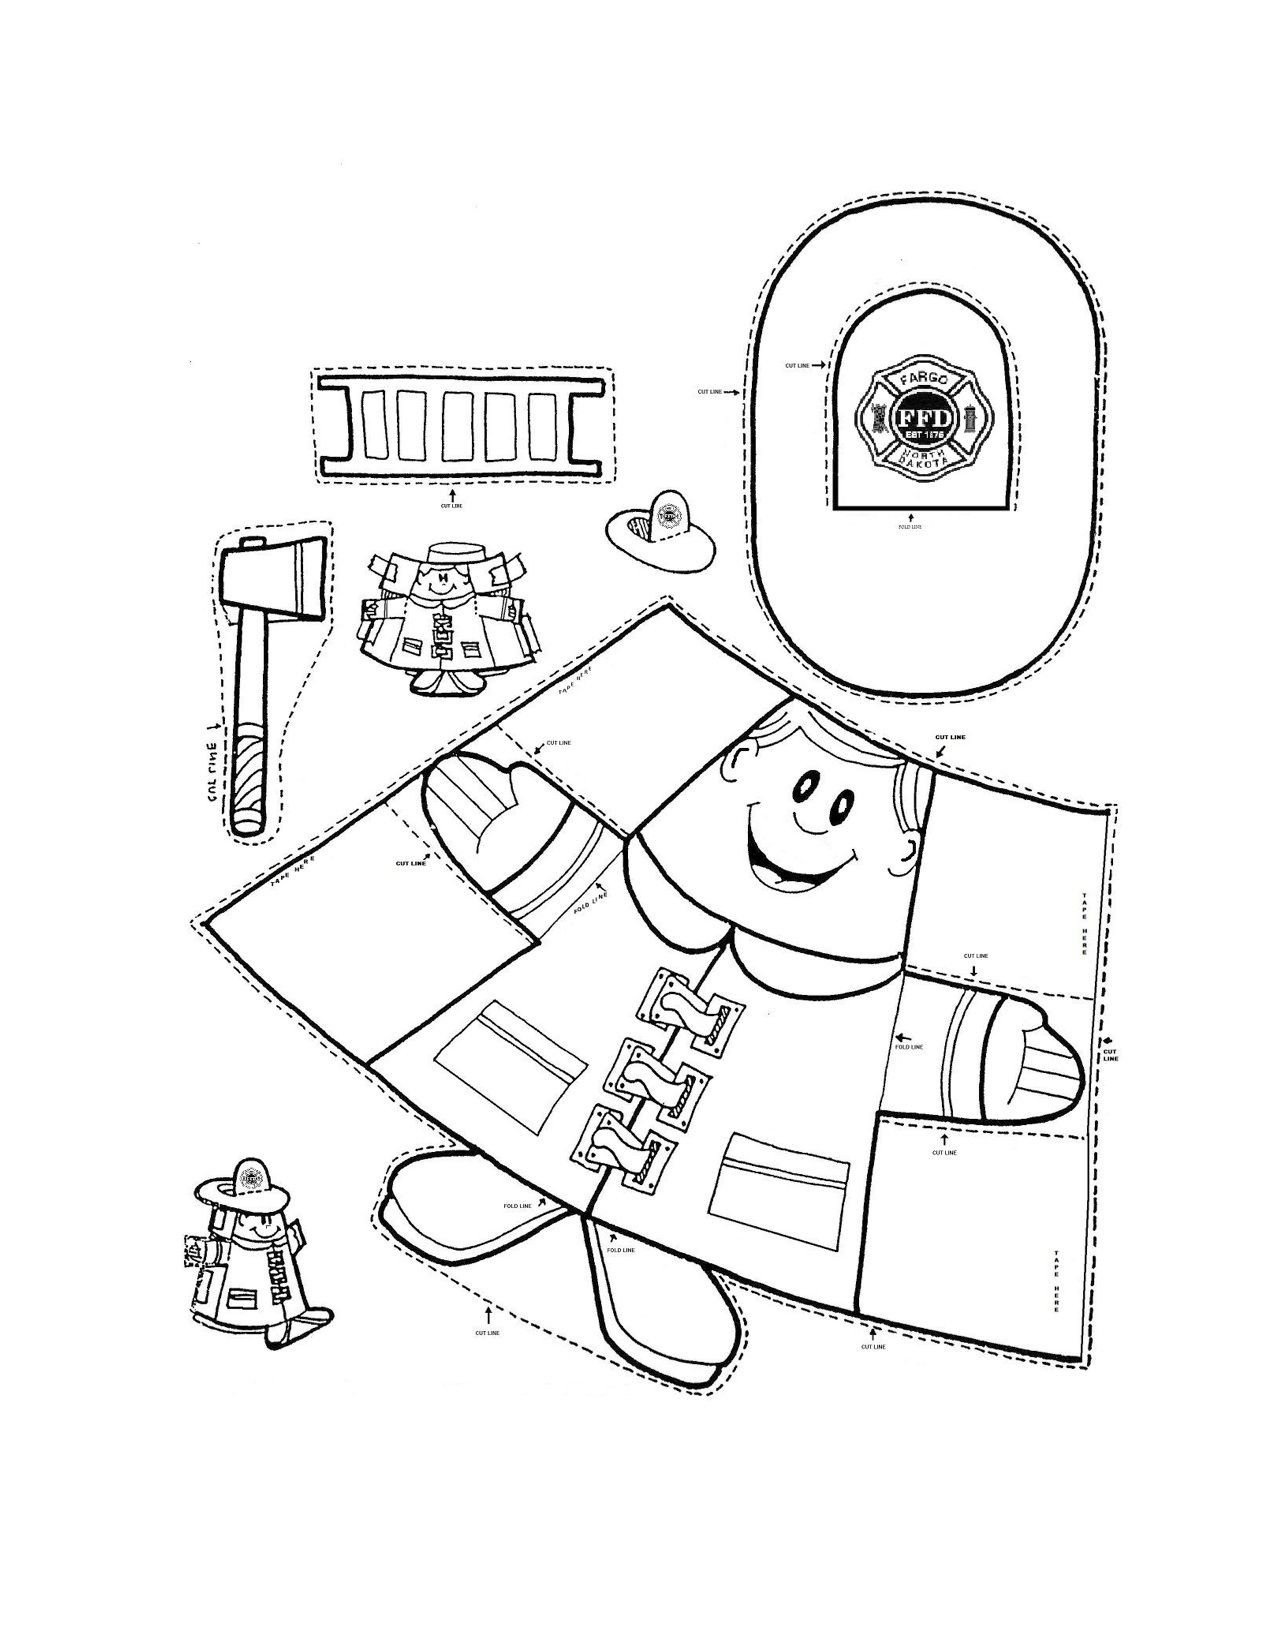 Free Fire Safety Worksheets Fire Safety Fireman Crafts Munity Helper Firefighter